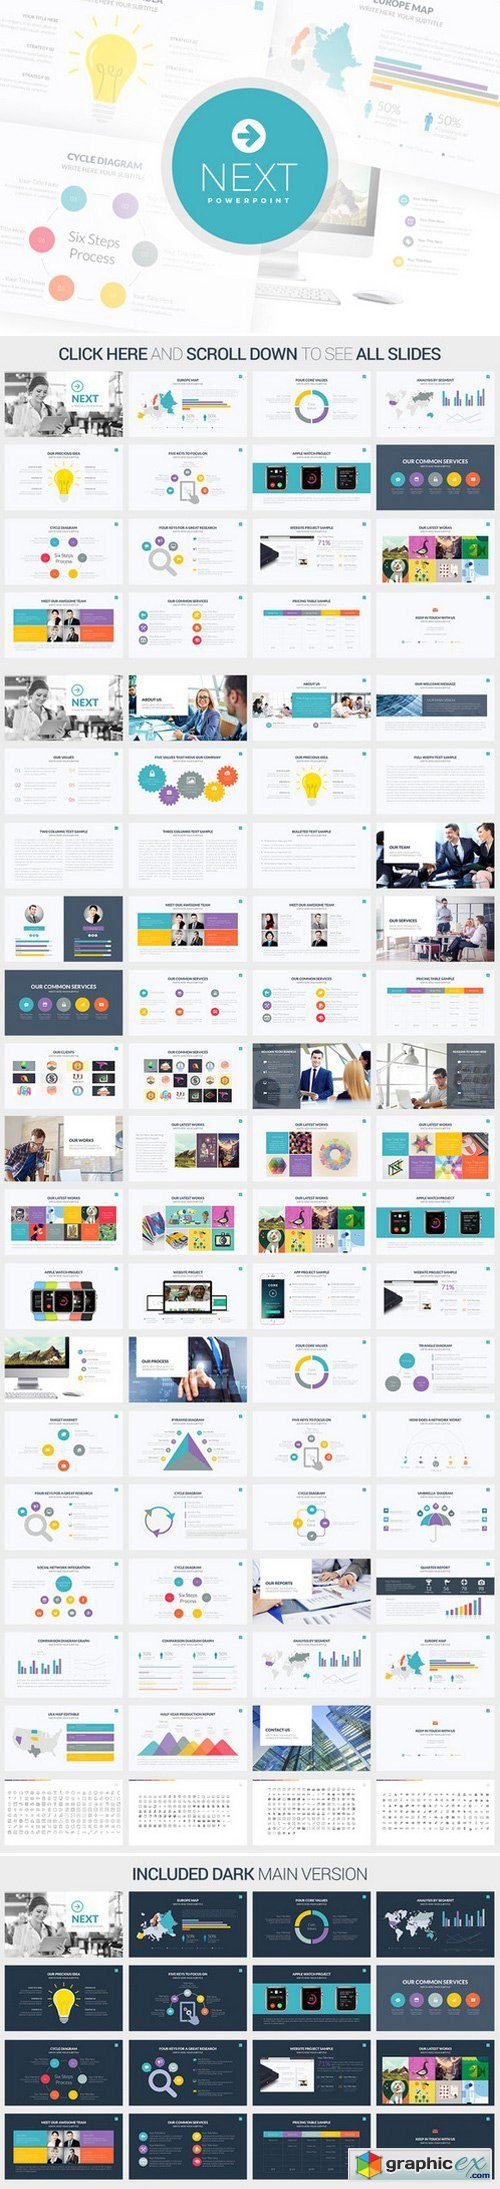 Next Powerpoint Template